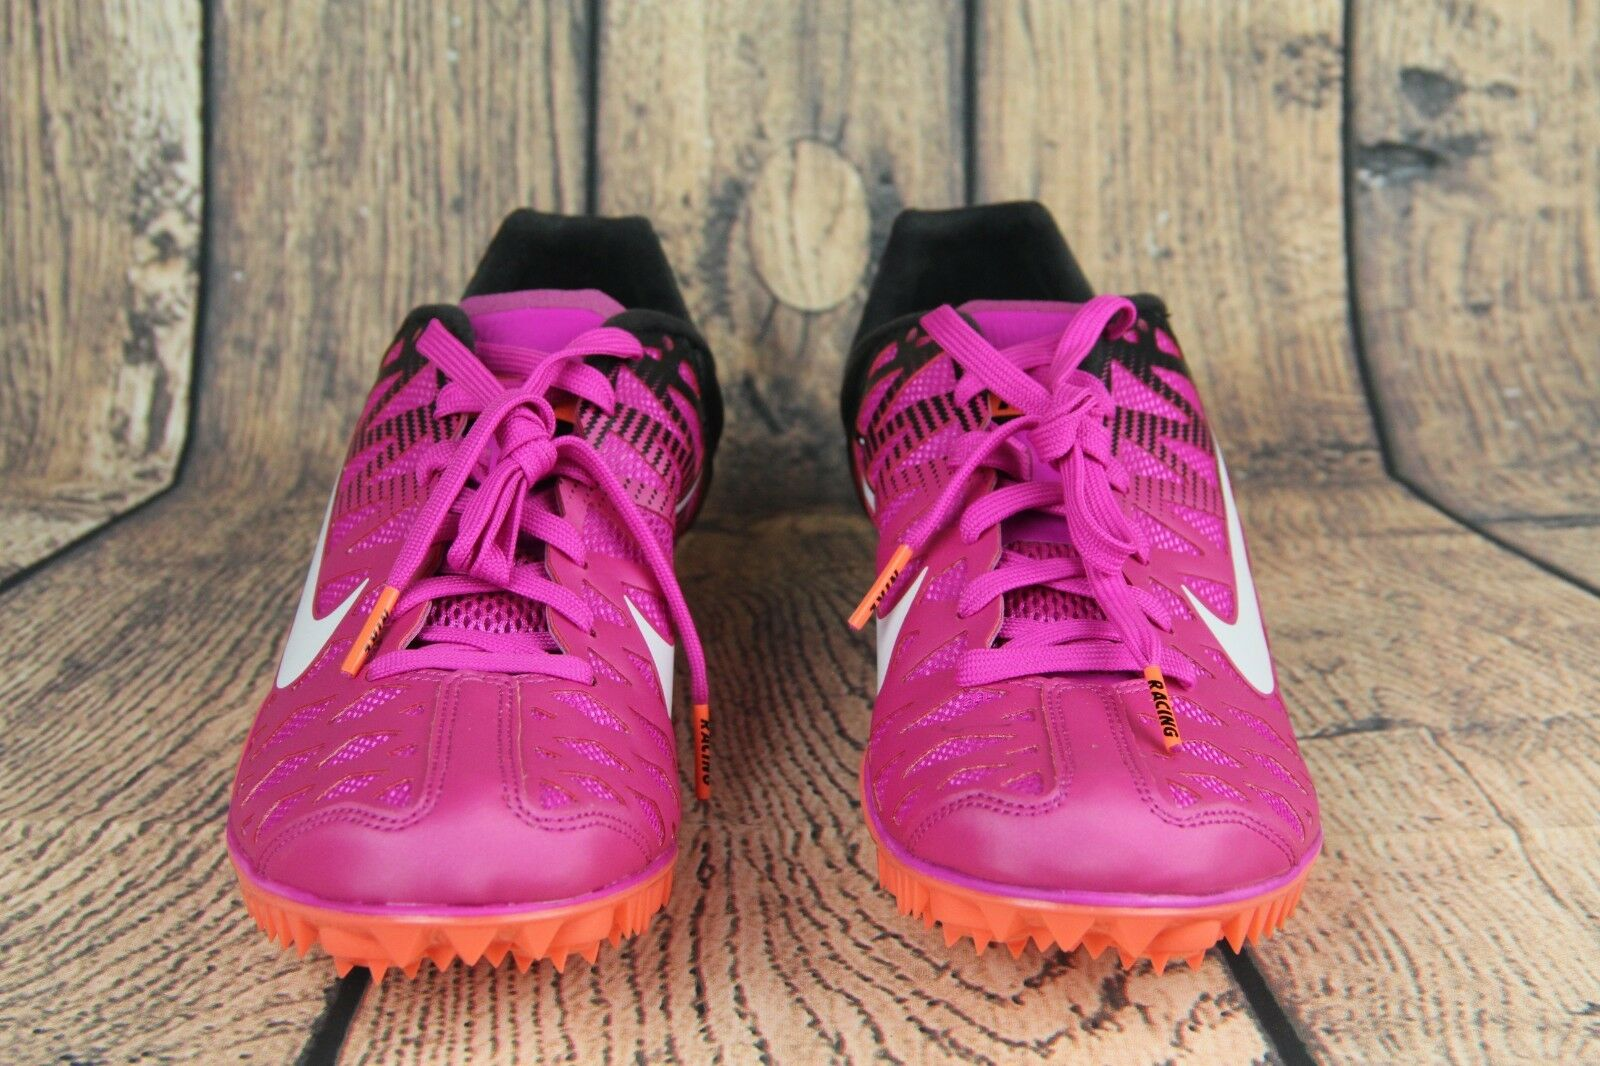 Nike Zoom Maxcat 4 Spikes Running Shoes Fire Pink Black 549150-601 Mens Size 7